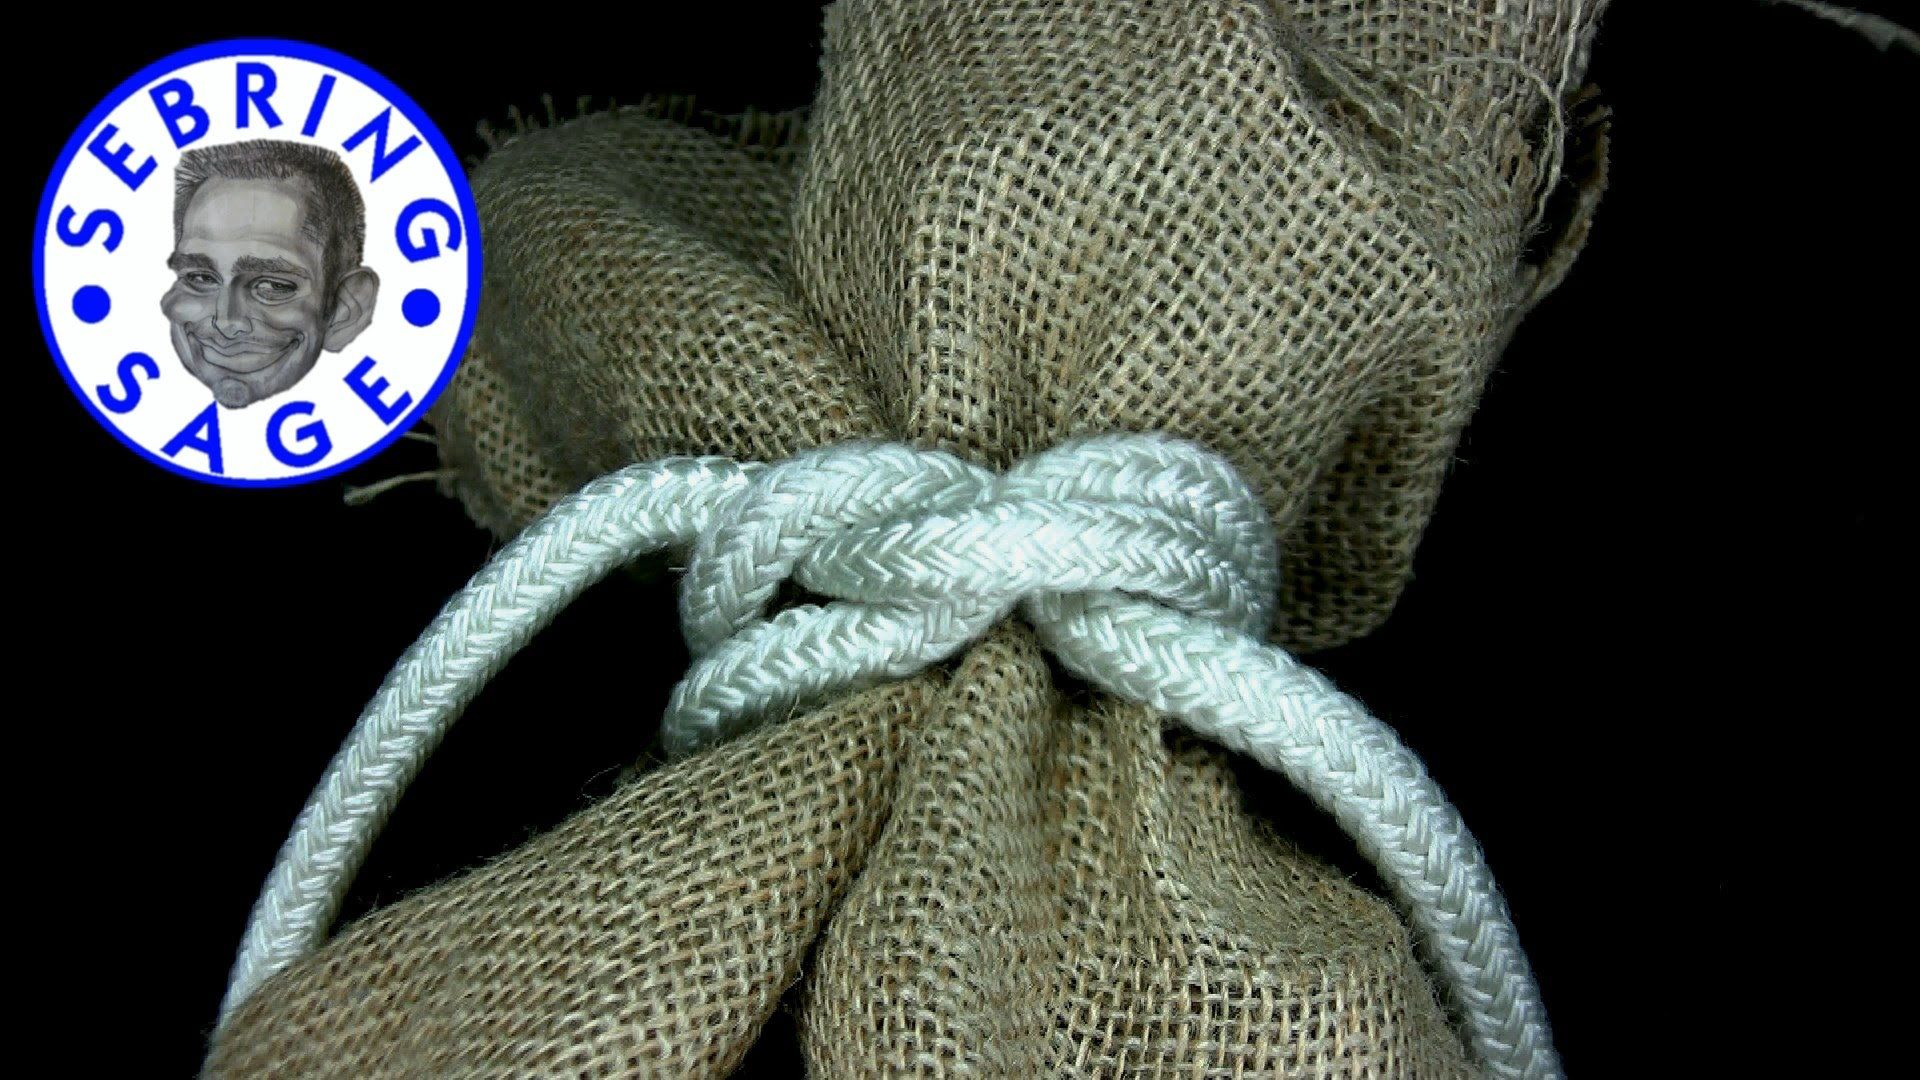 Knot tying the bag knot이미지 포함 매듭